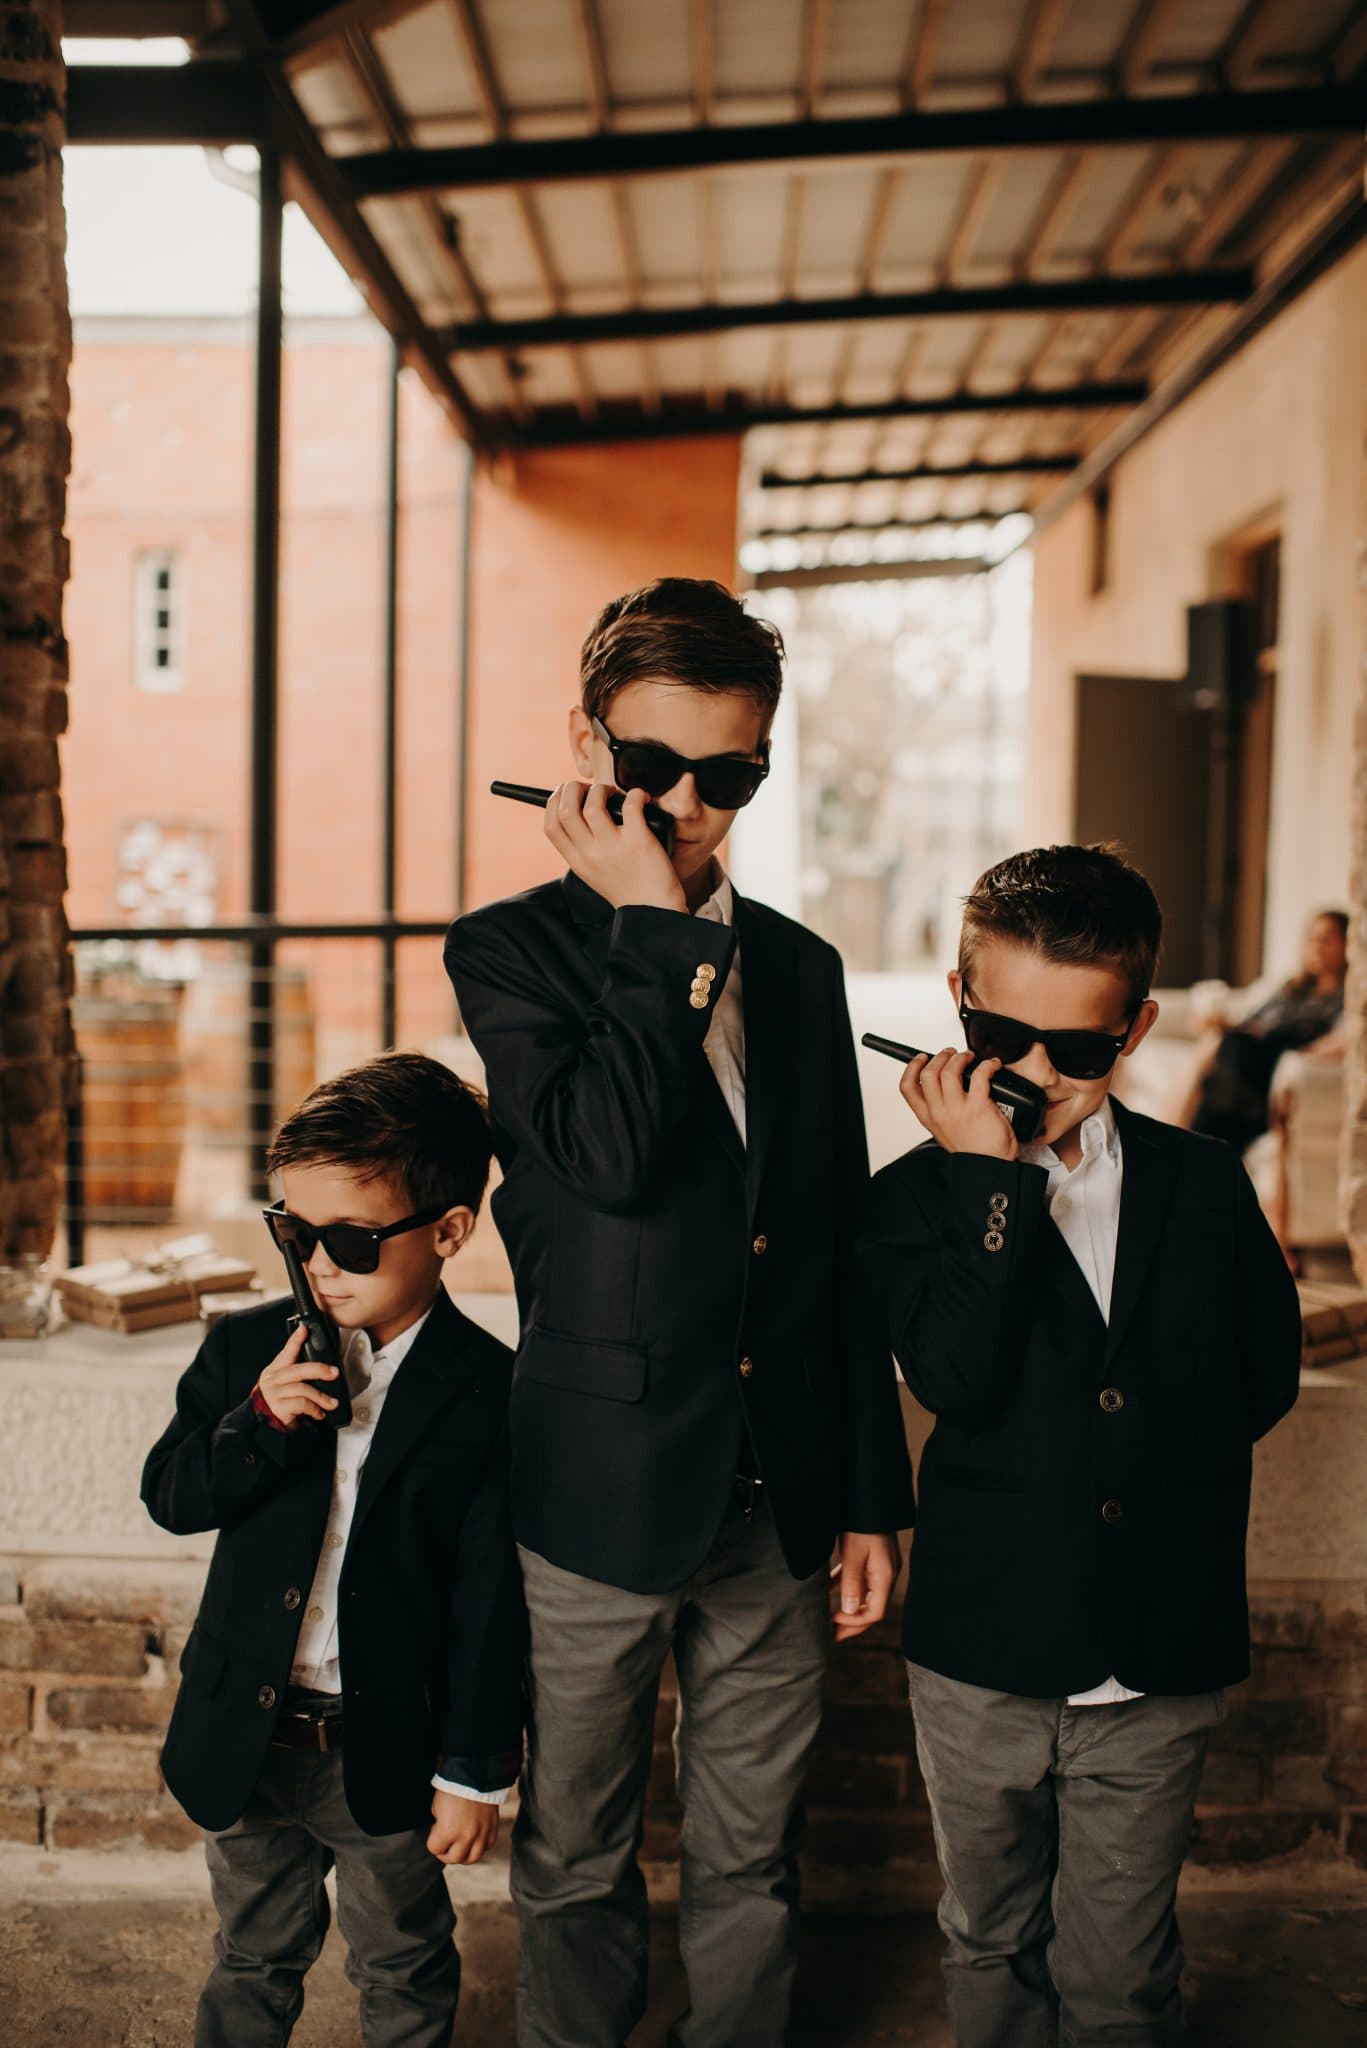 Portrait of 3 boys in matching suits and sunglasses pretending to talk on two way radios at the Ingenhuett on High in Comfort, Texas. Photograph by Austin, Texas wedding photographer Nikk Nguyen.